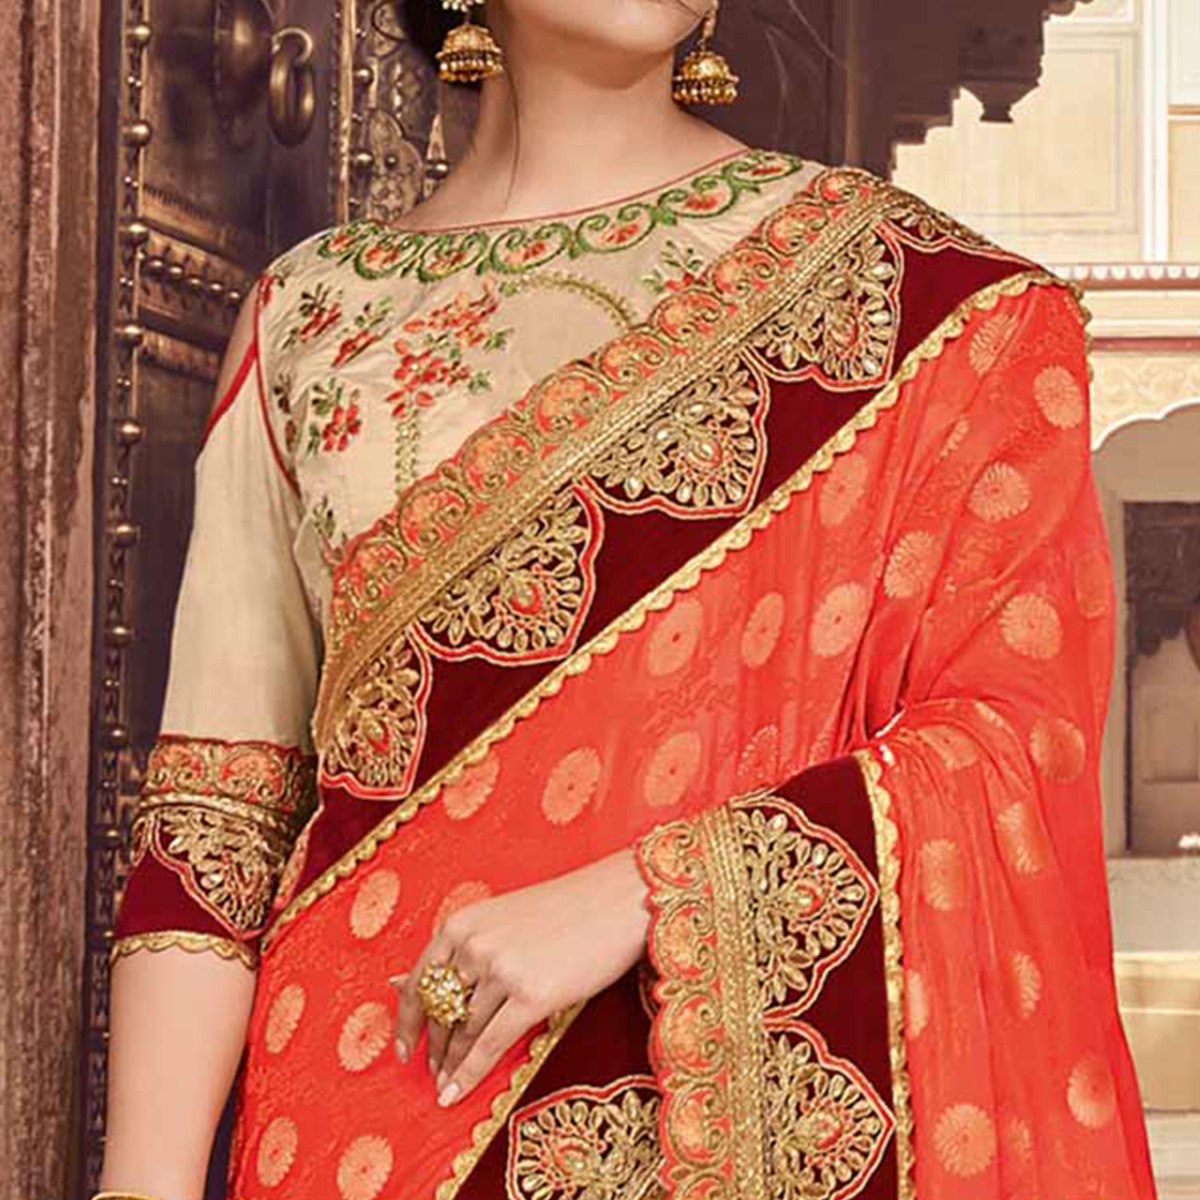 Prominent Orange-Beige Colored Wedding Wear Embroidered Jacquard - Raw Silk Saree